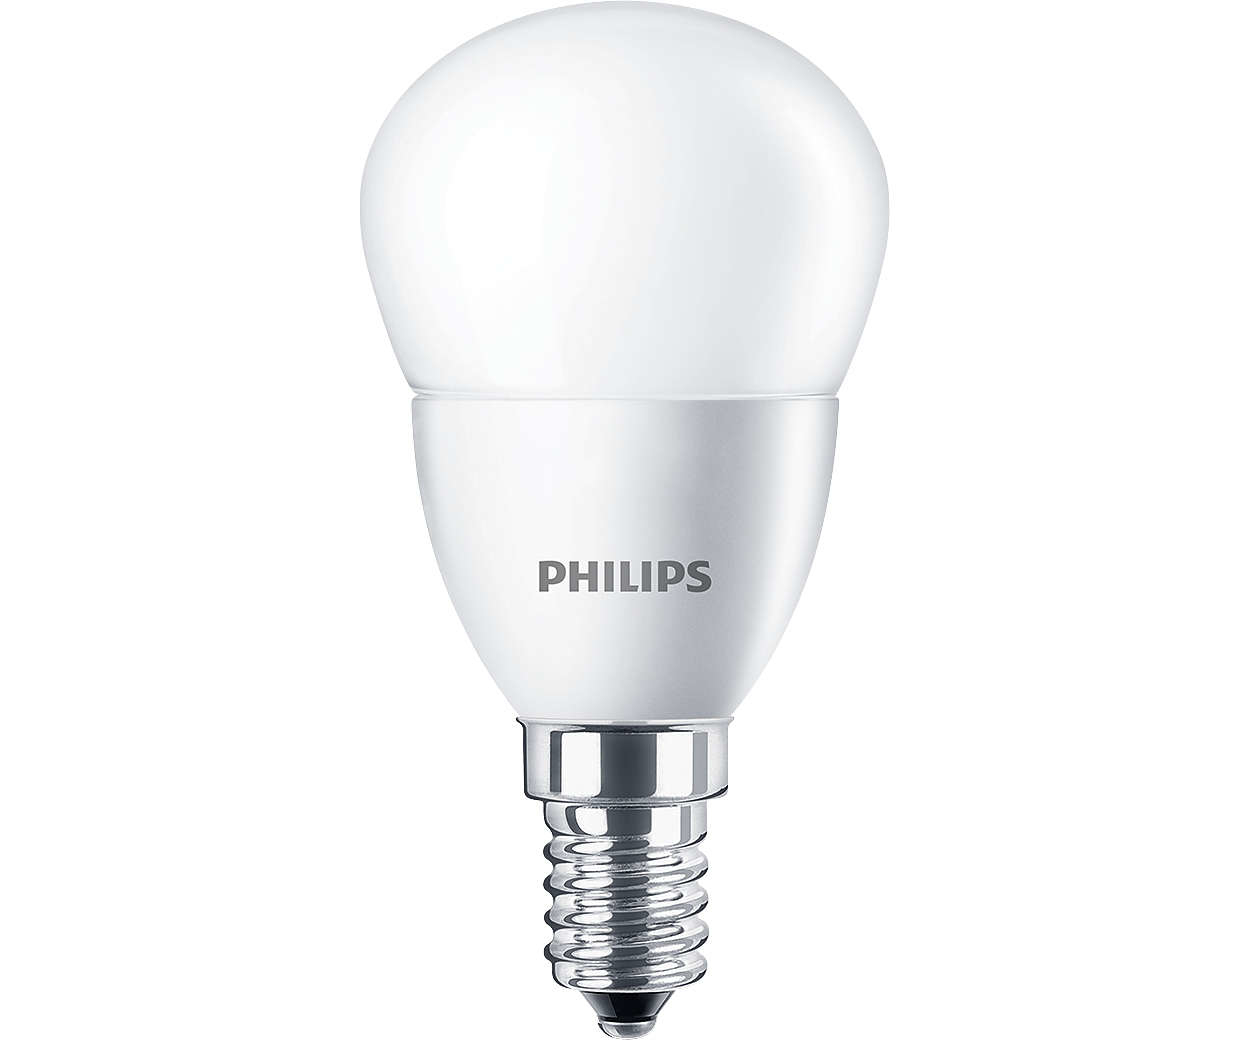 Philips - Lampadina a LED - CORELUS25840